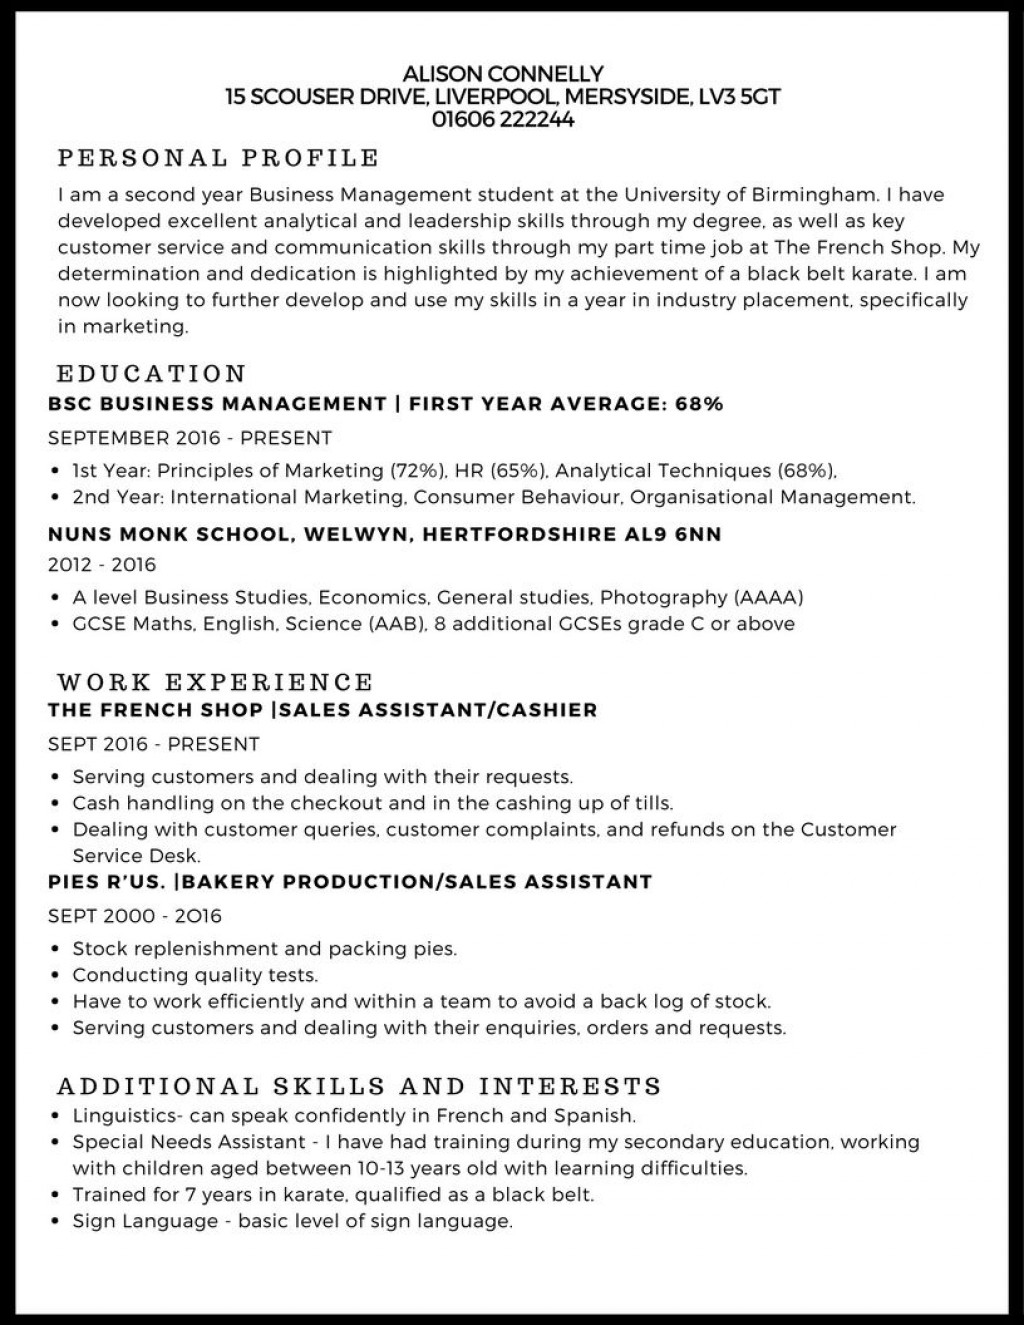 007 Fascinating Curriculum Vitae Template Student Photo  Sample College Undergraduate Example For Research PaperLarge